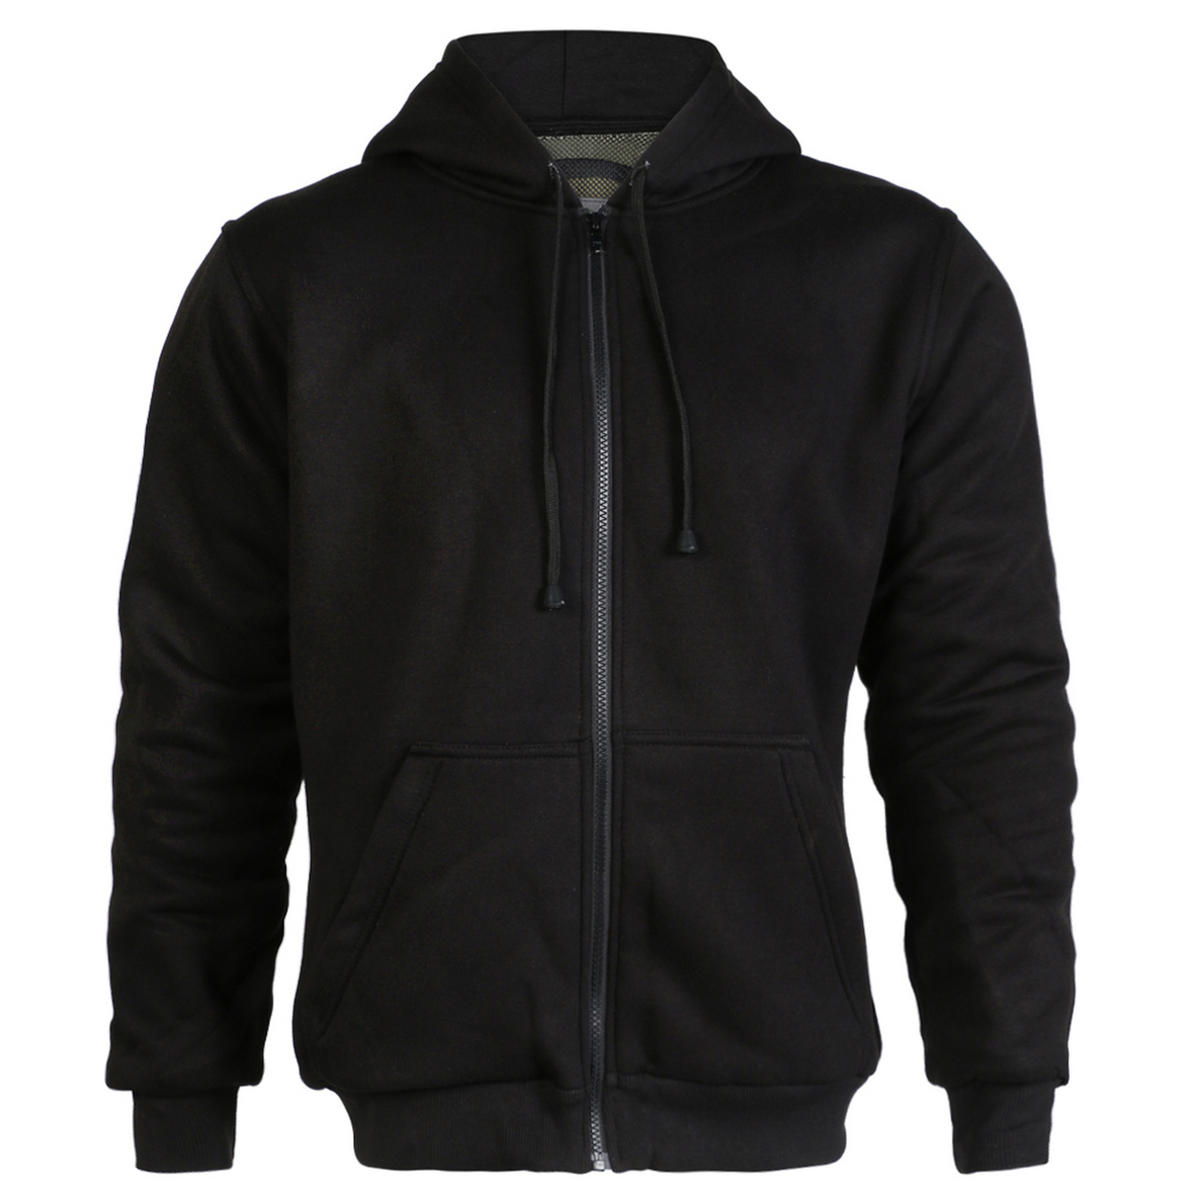 Turin Black Kevlar Lined Hooded Top